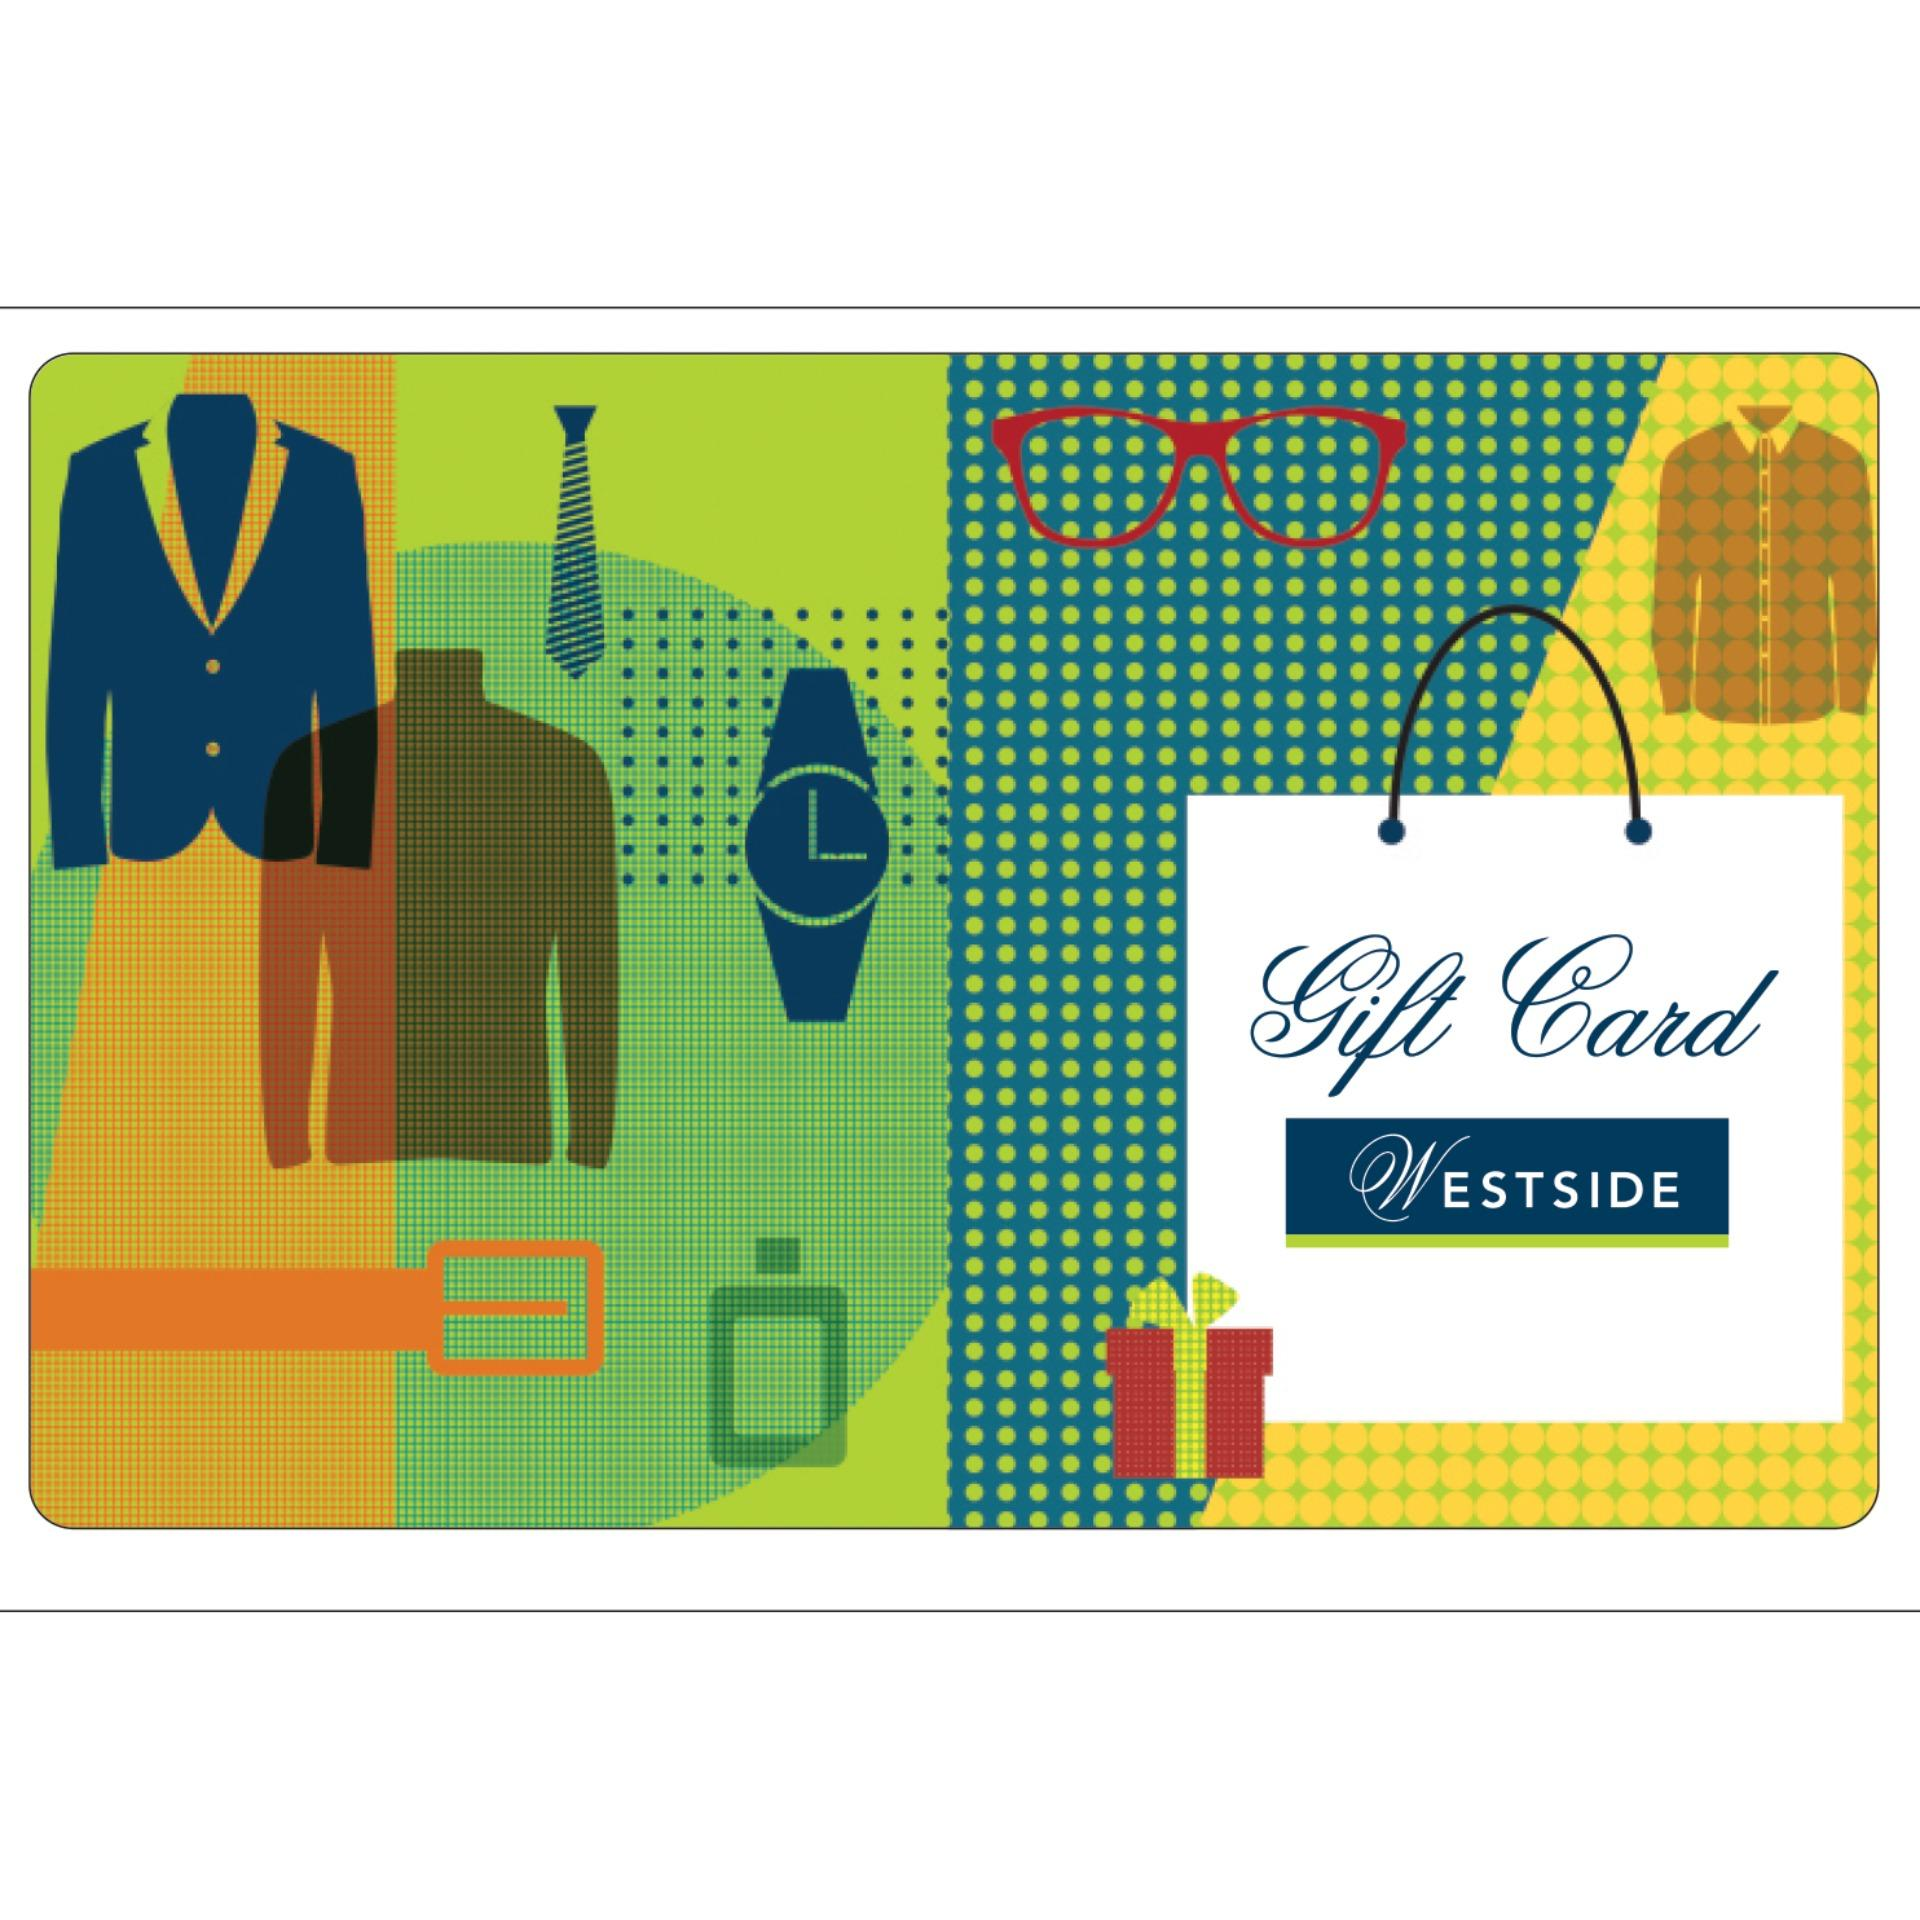 Westside Digital Gift Cards: Rs. 4005 By Qwikcilver Store.